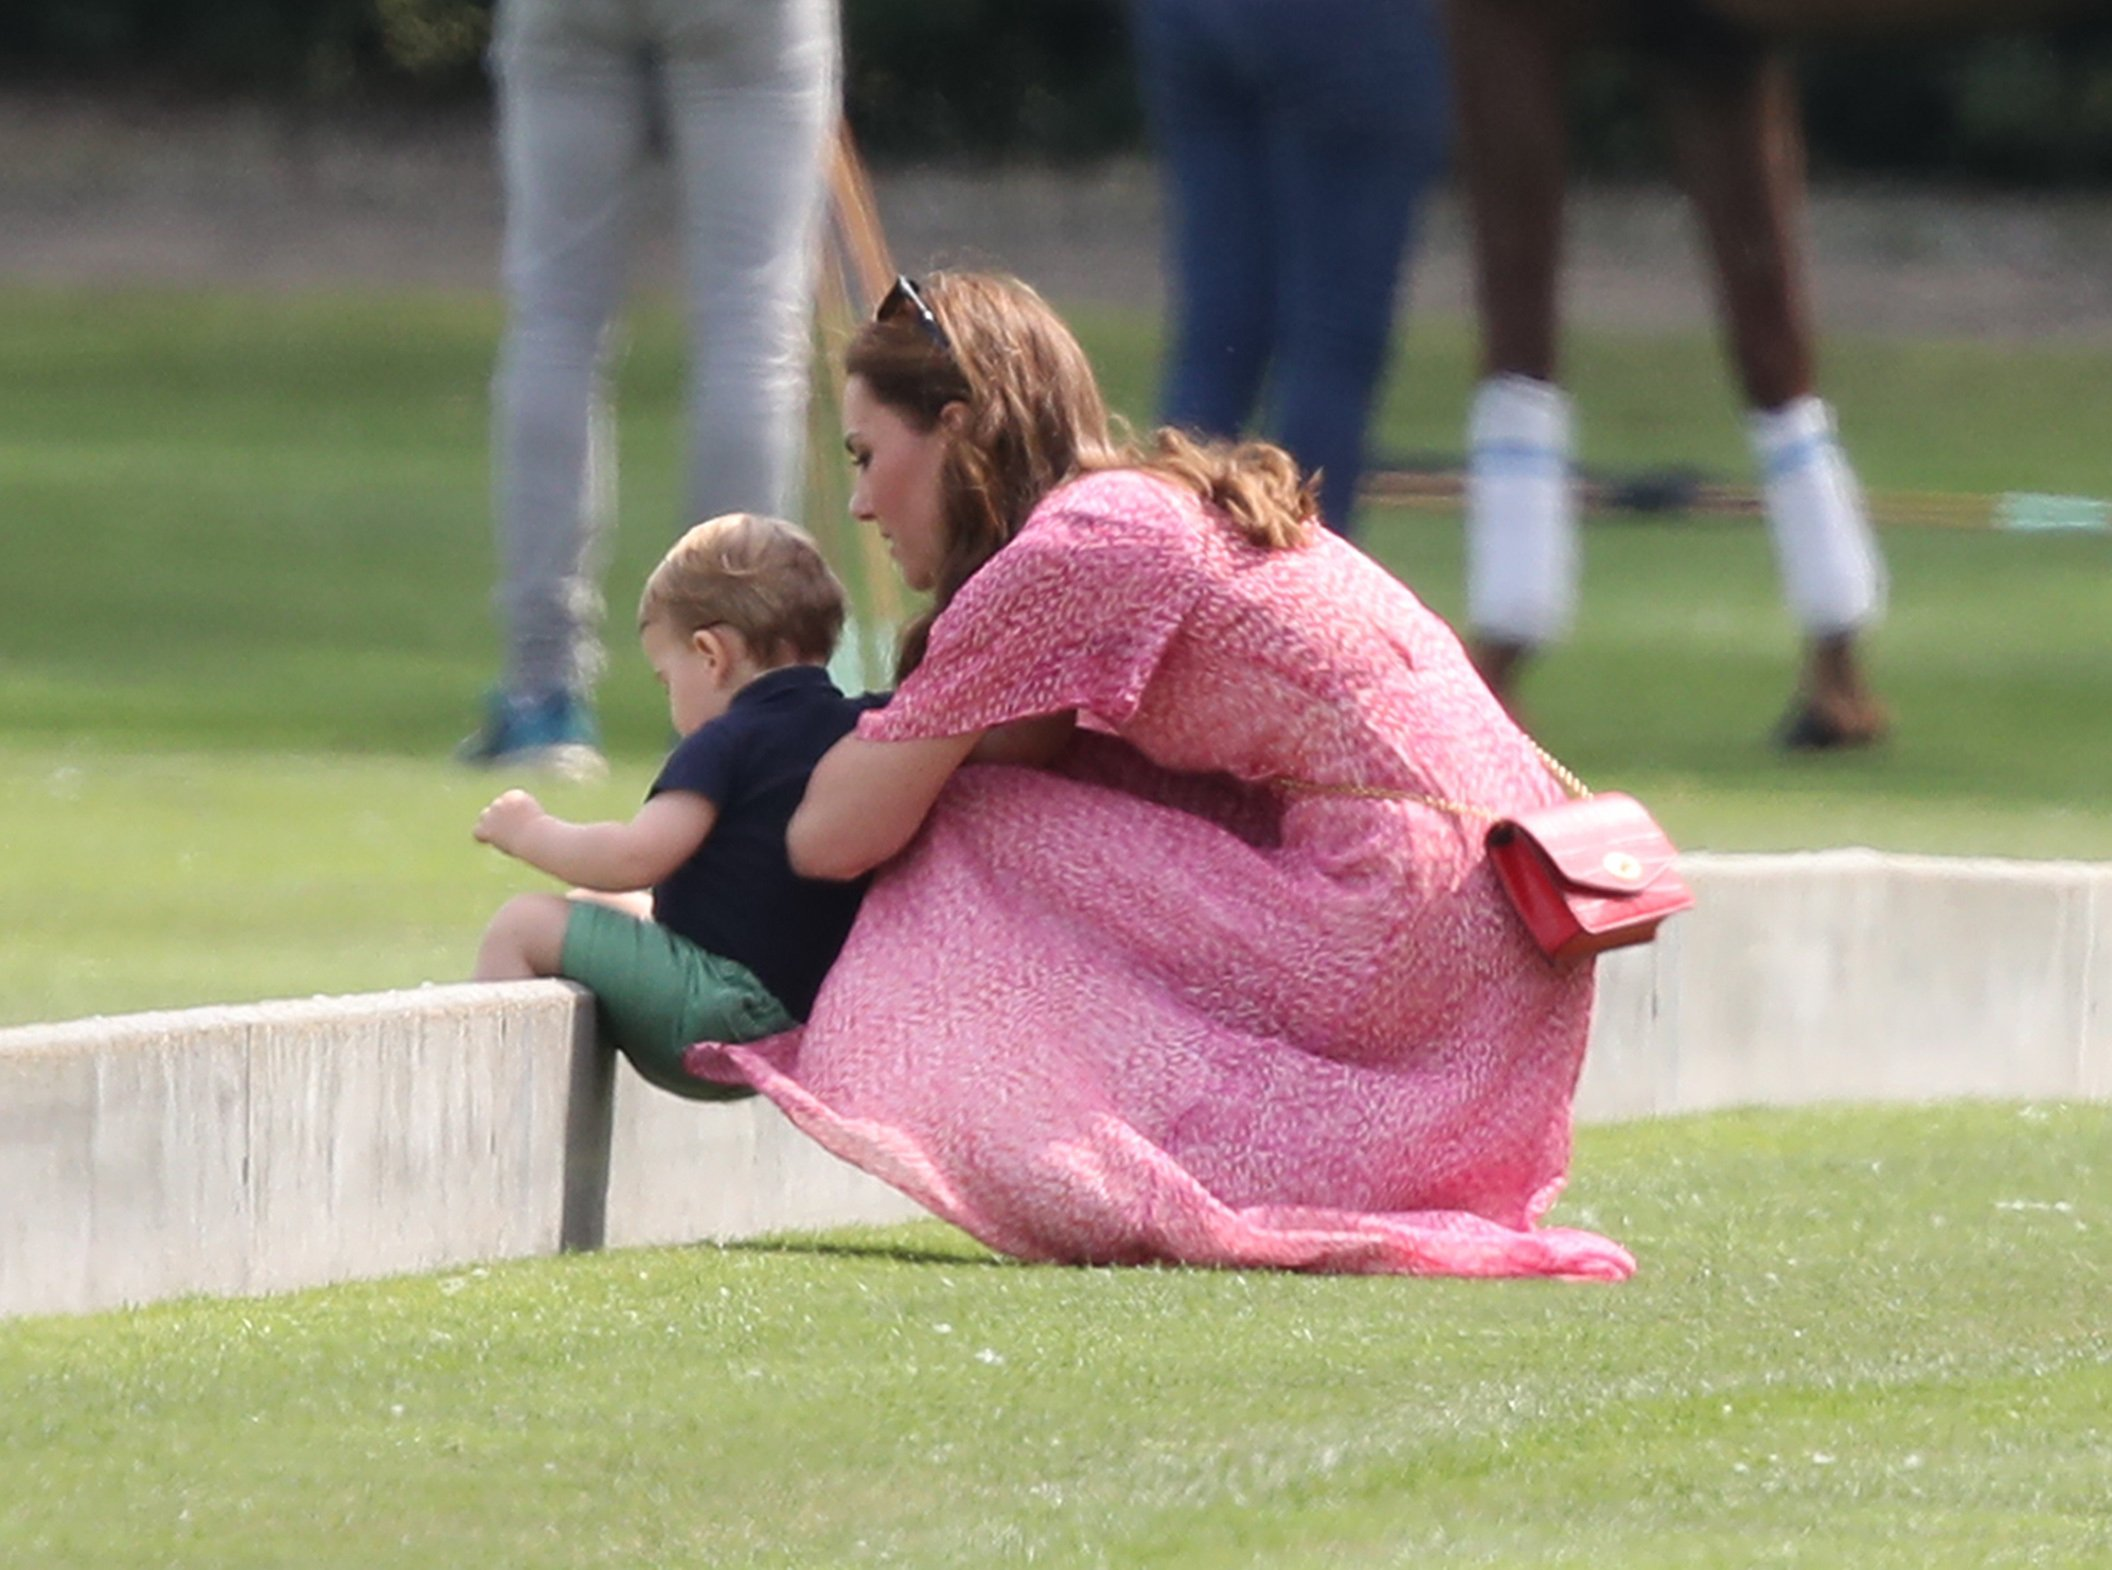 The Duchess of Cambridge and Prince Louis attend the King Power Royal Charity Polo Day at Billingbear Polo Club, Wokingham, Berkshire., Image: 456763404, License: Rights-managed, Restrictions: , Model Release: no, Credit line: Profimedia, Press Association